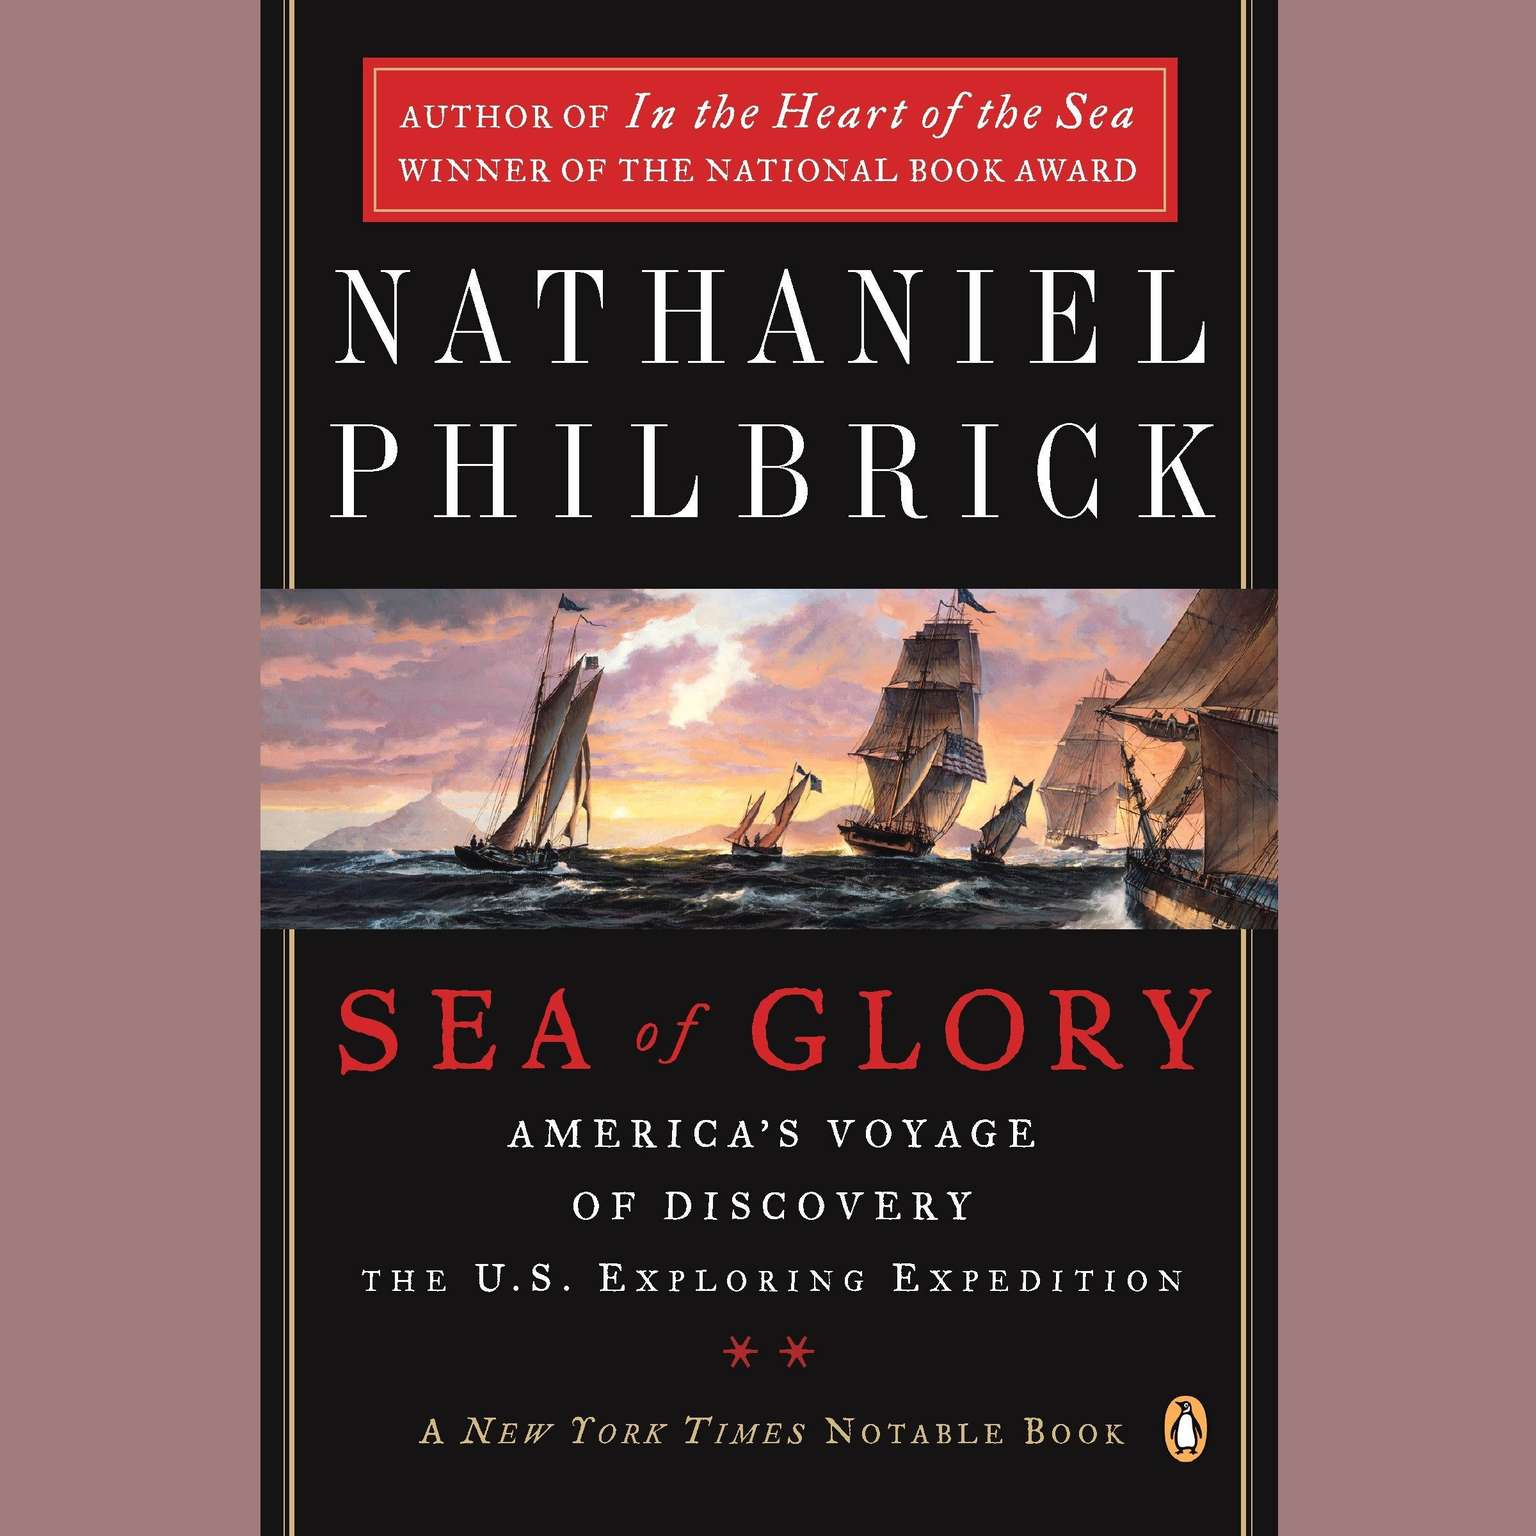 Sea of Glory (Abridged): Americas Voyage of Discovery, the U.S. Exploring Expedition, 1838-1842 Audiobook, by Nathaniel Philbrick